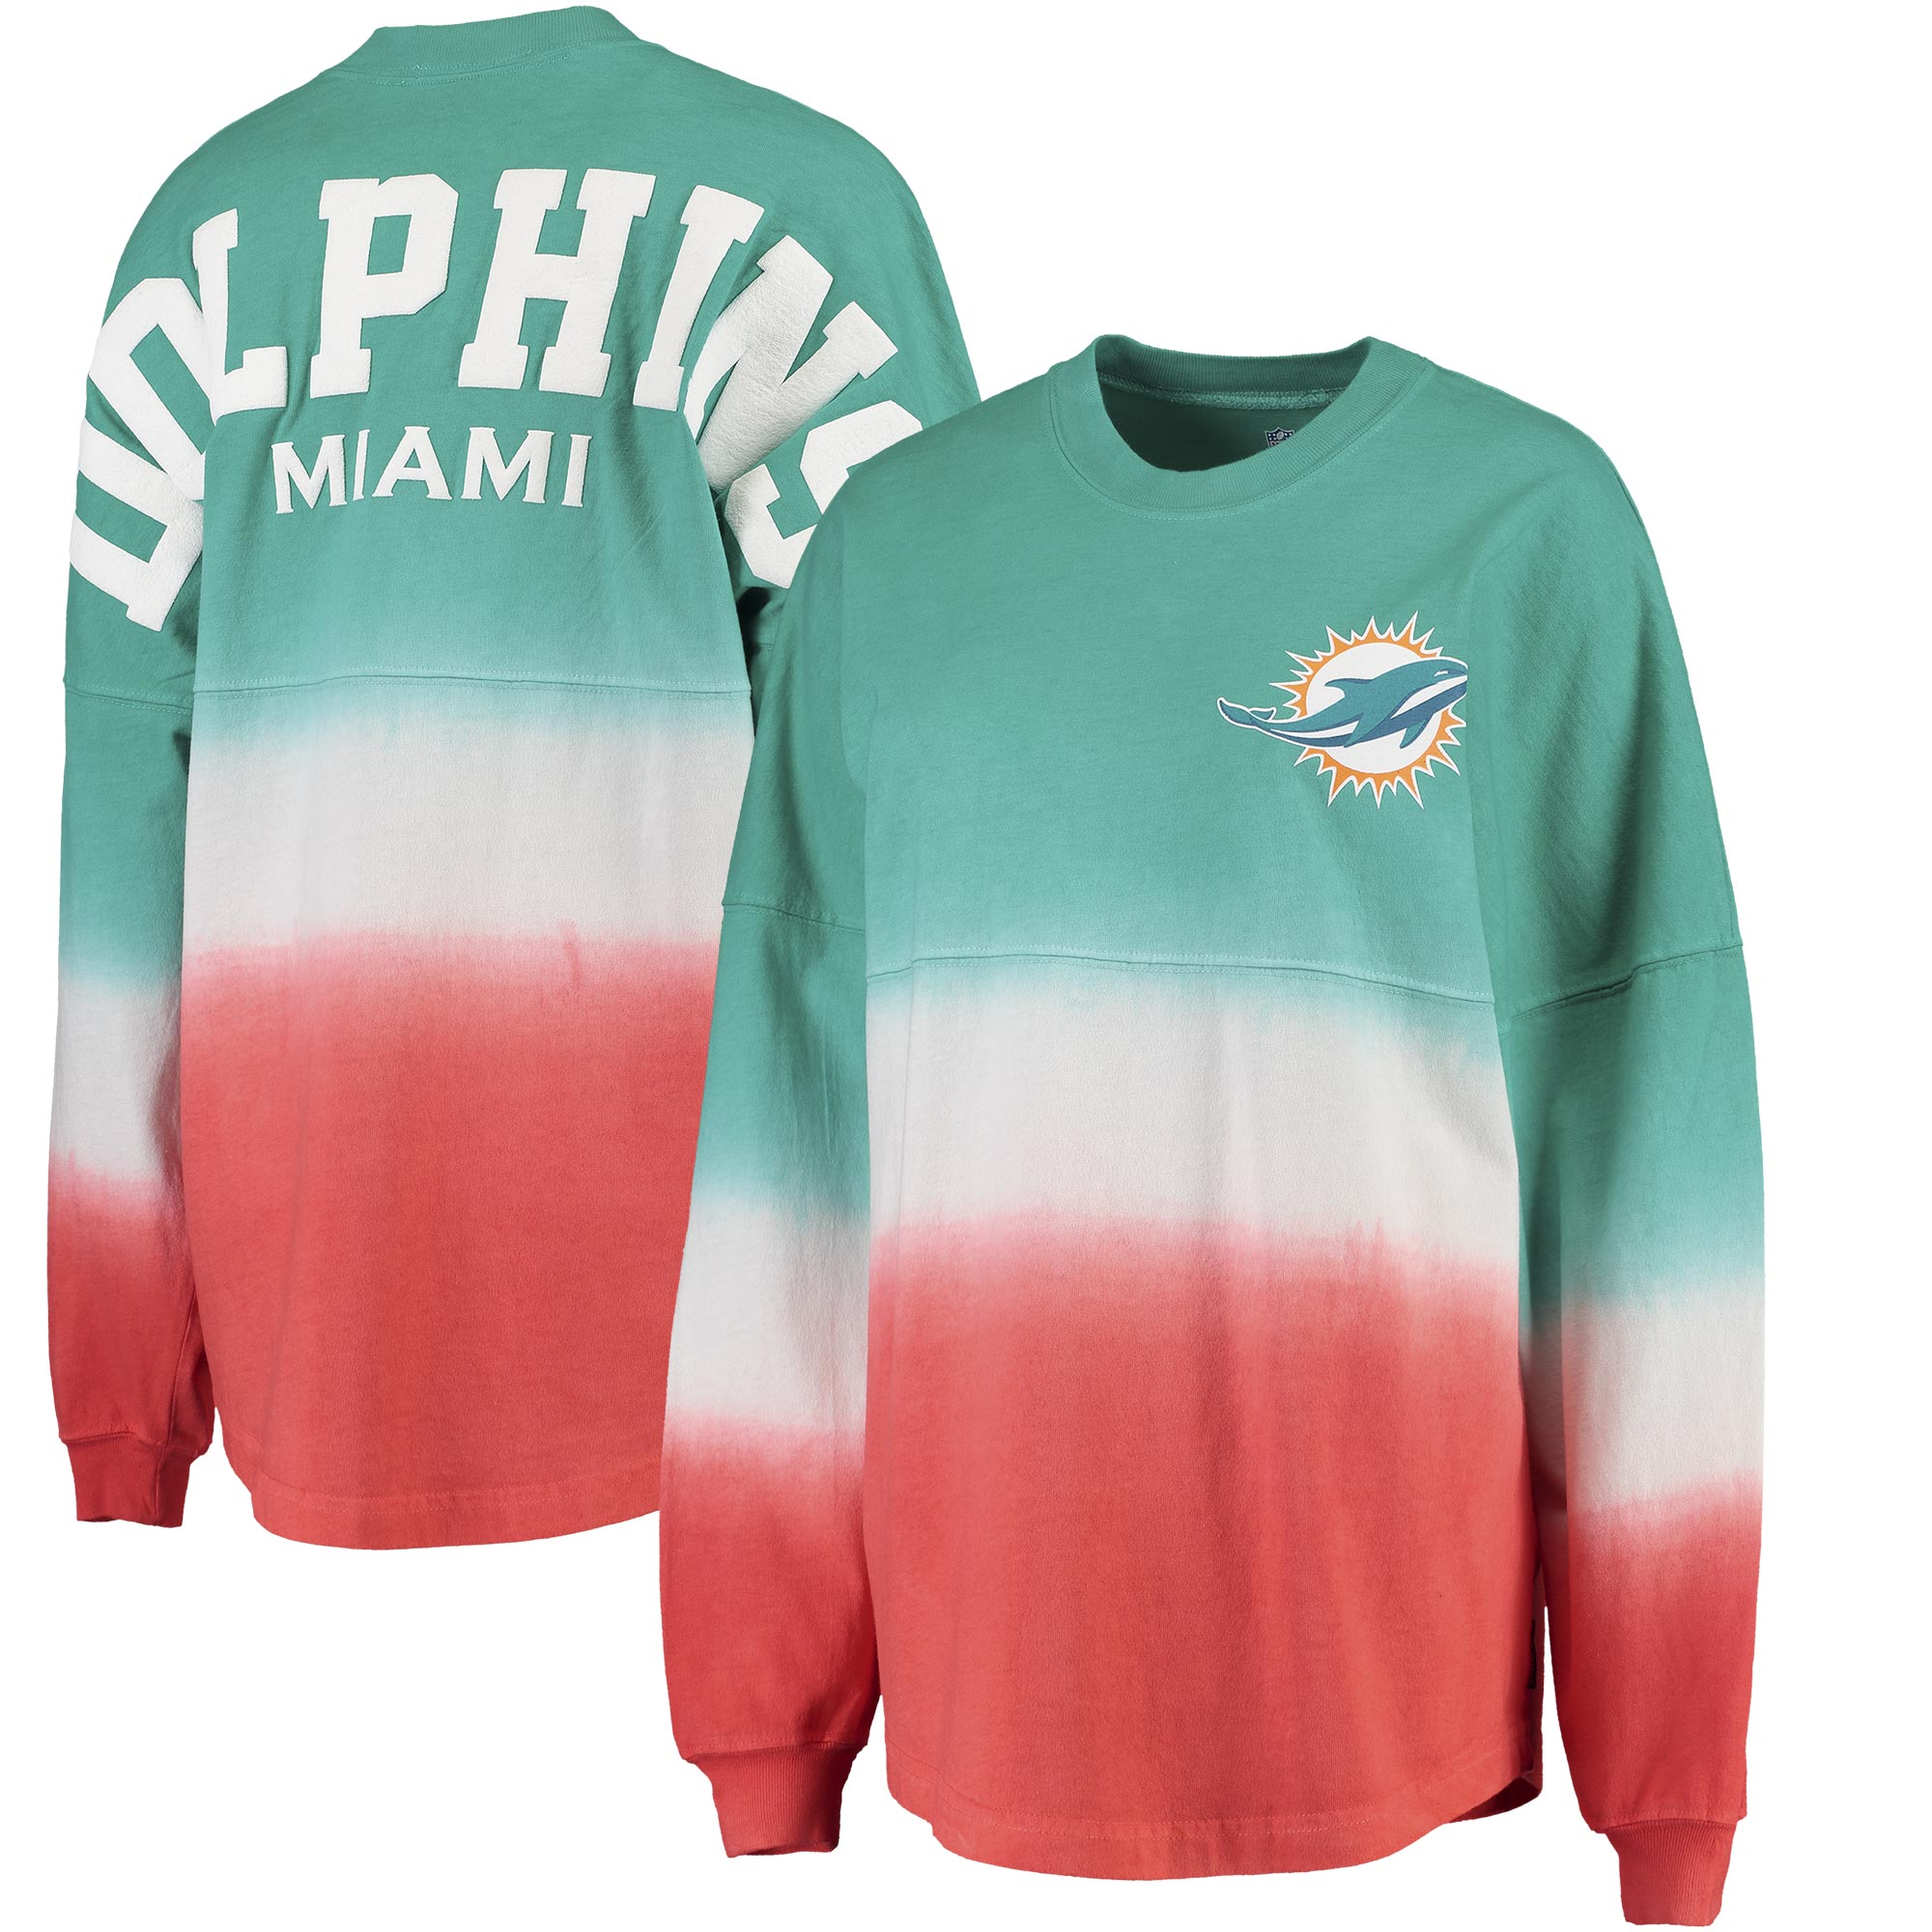 Miami Dolphins NFL Pro Line by Fanatics Branded Women's Spirit Jersey Long Sleeve T-Shirt - Aqua/Orange